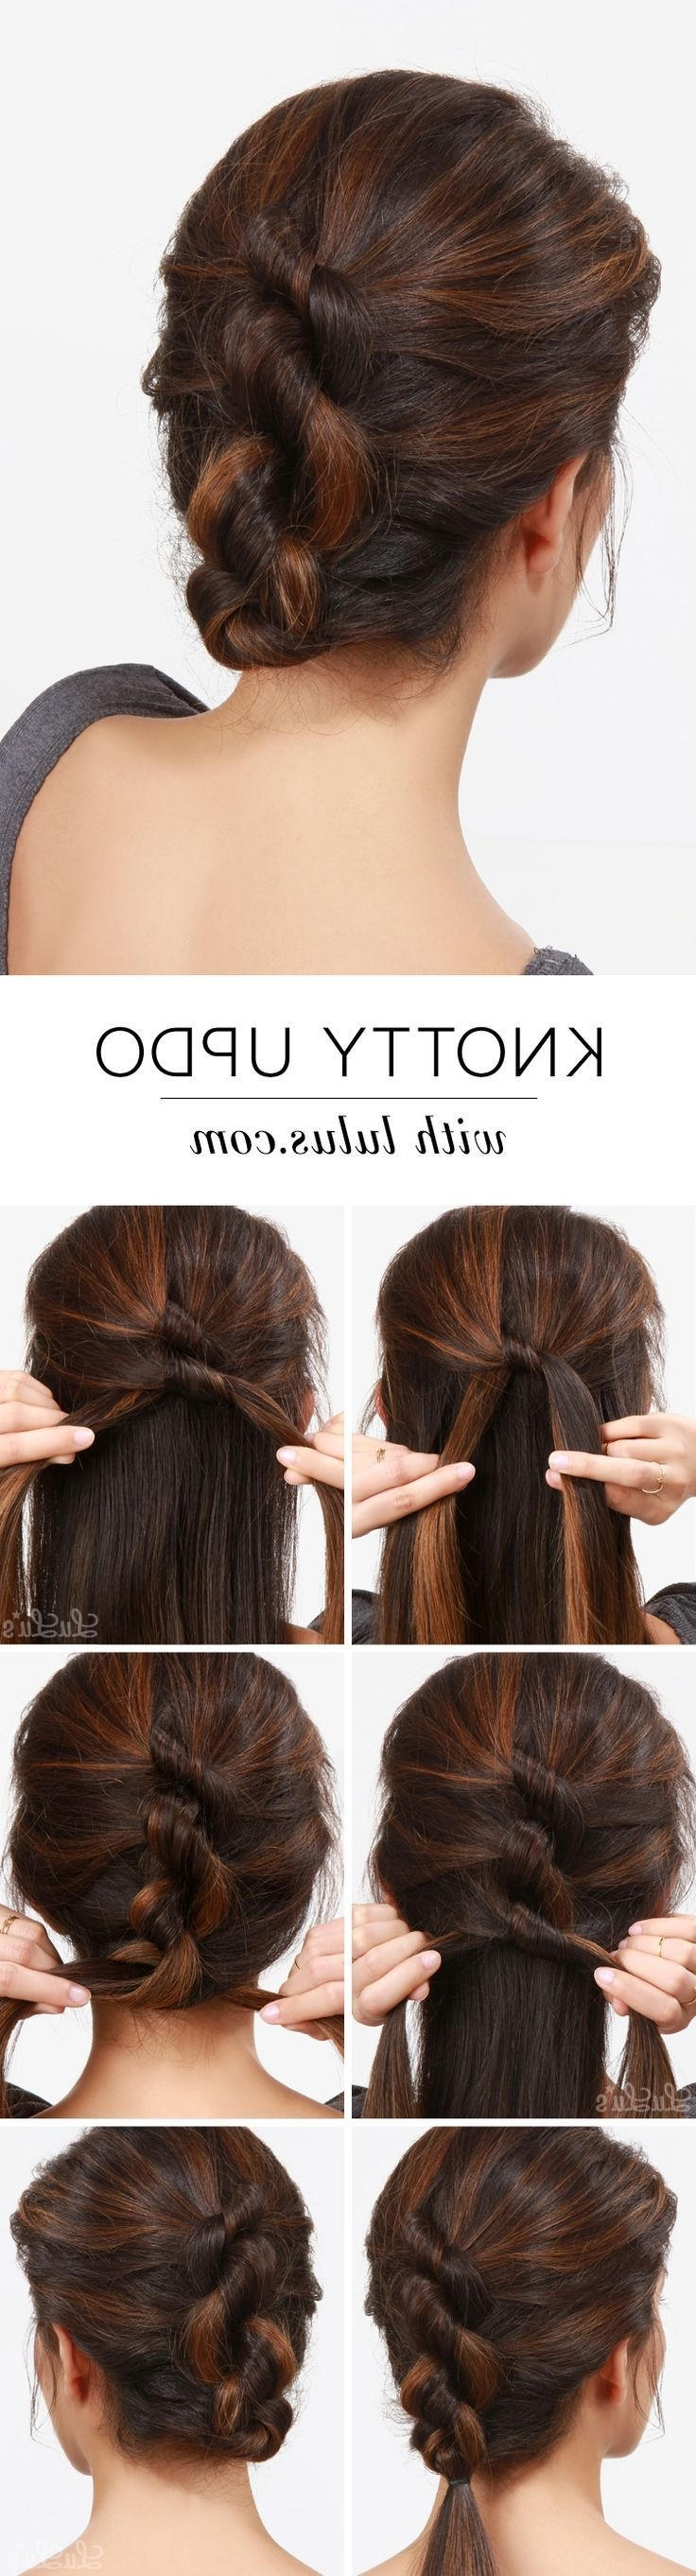 157 Best Hair Tutorials Images On Pinterest | Hairstyle Ideas Pertaining To Easy Updos For Medium Thin Hair (View 5 of 15)